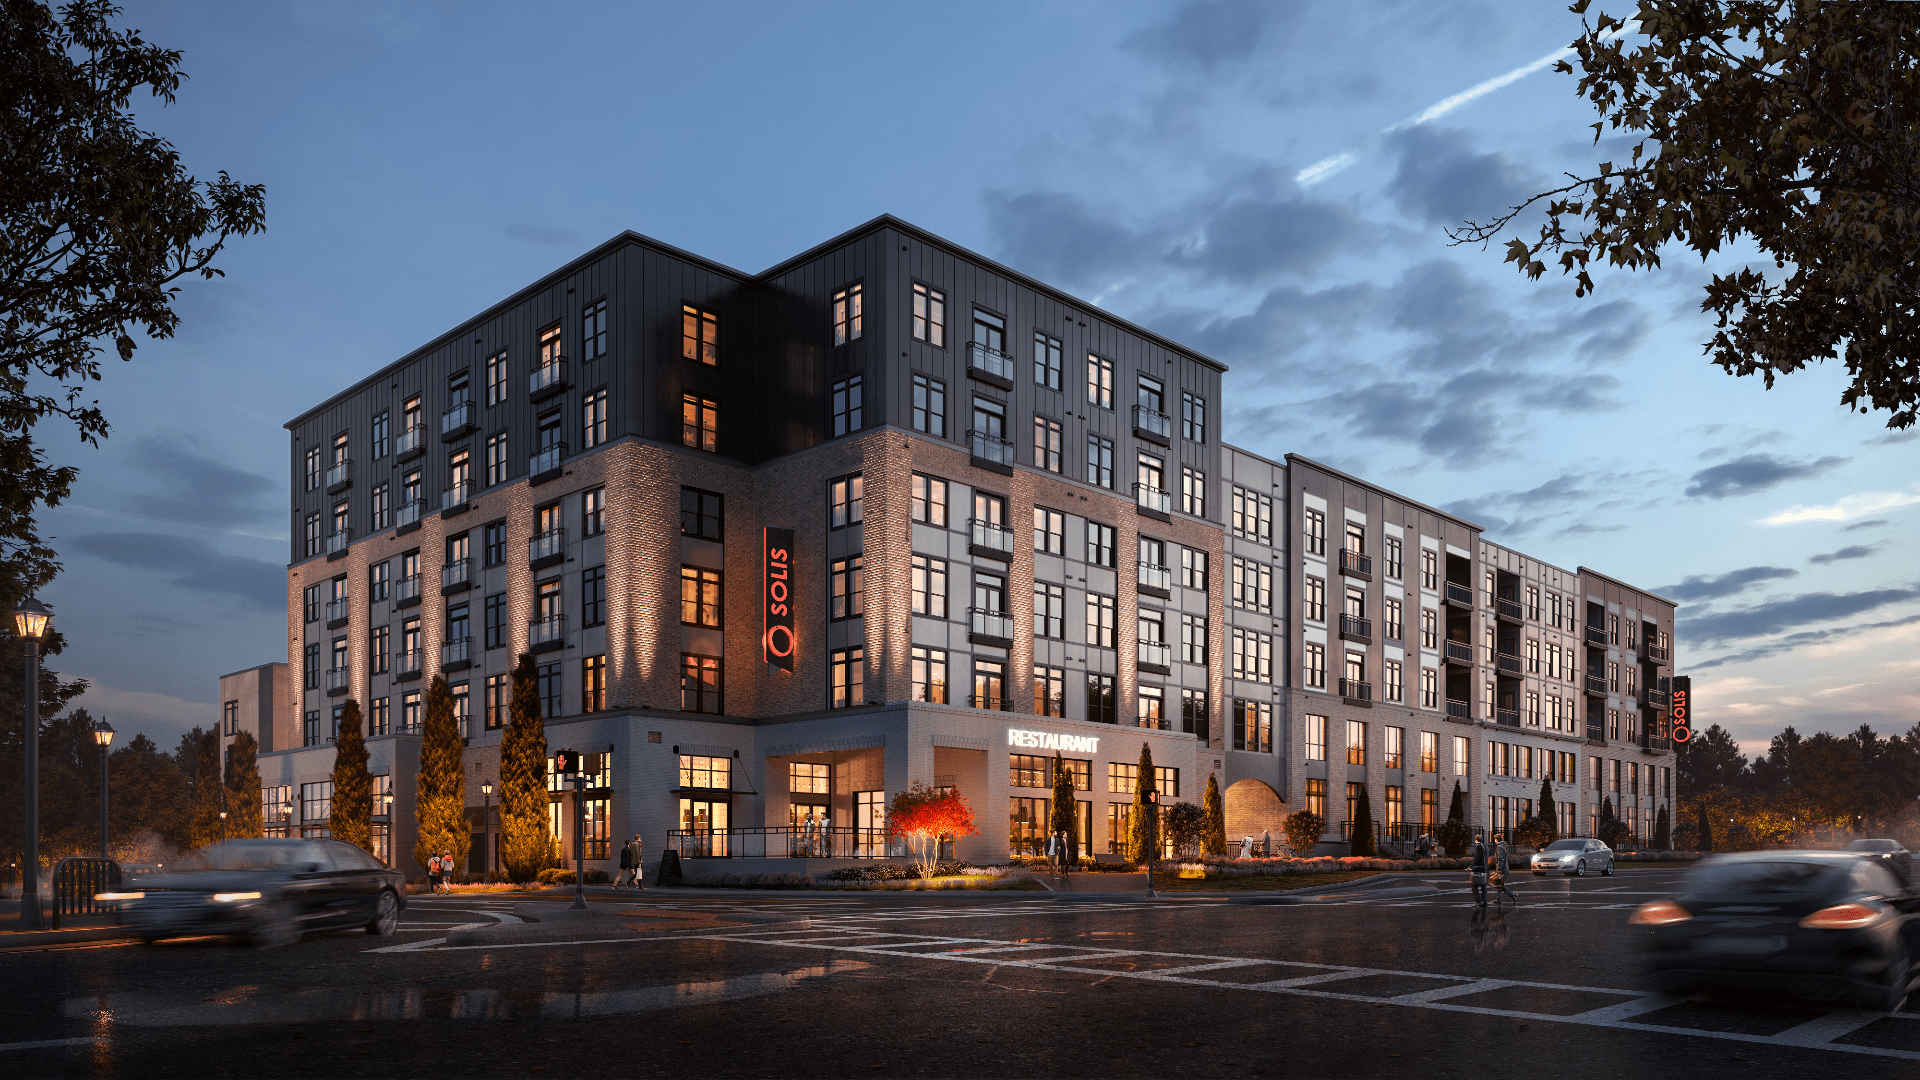 Exterior Rendering - Building at Night 2